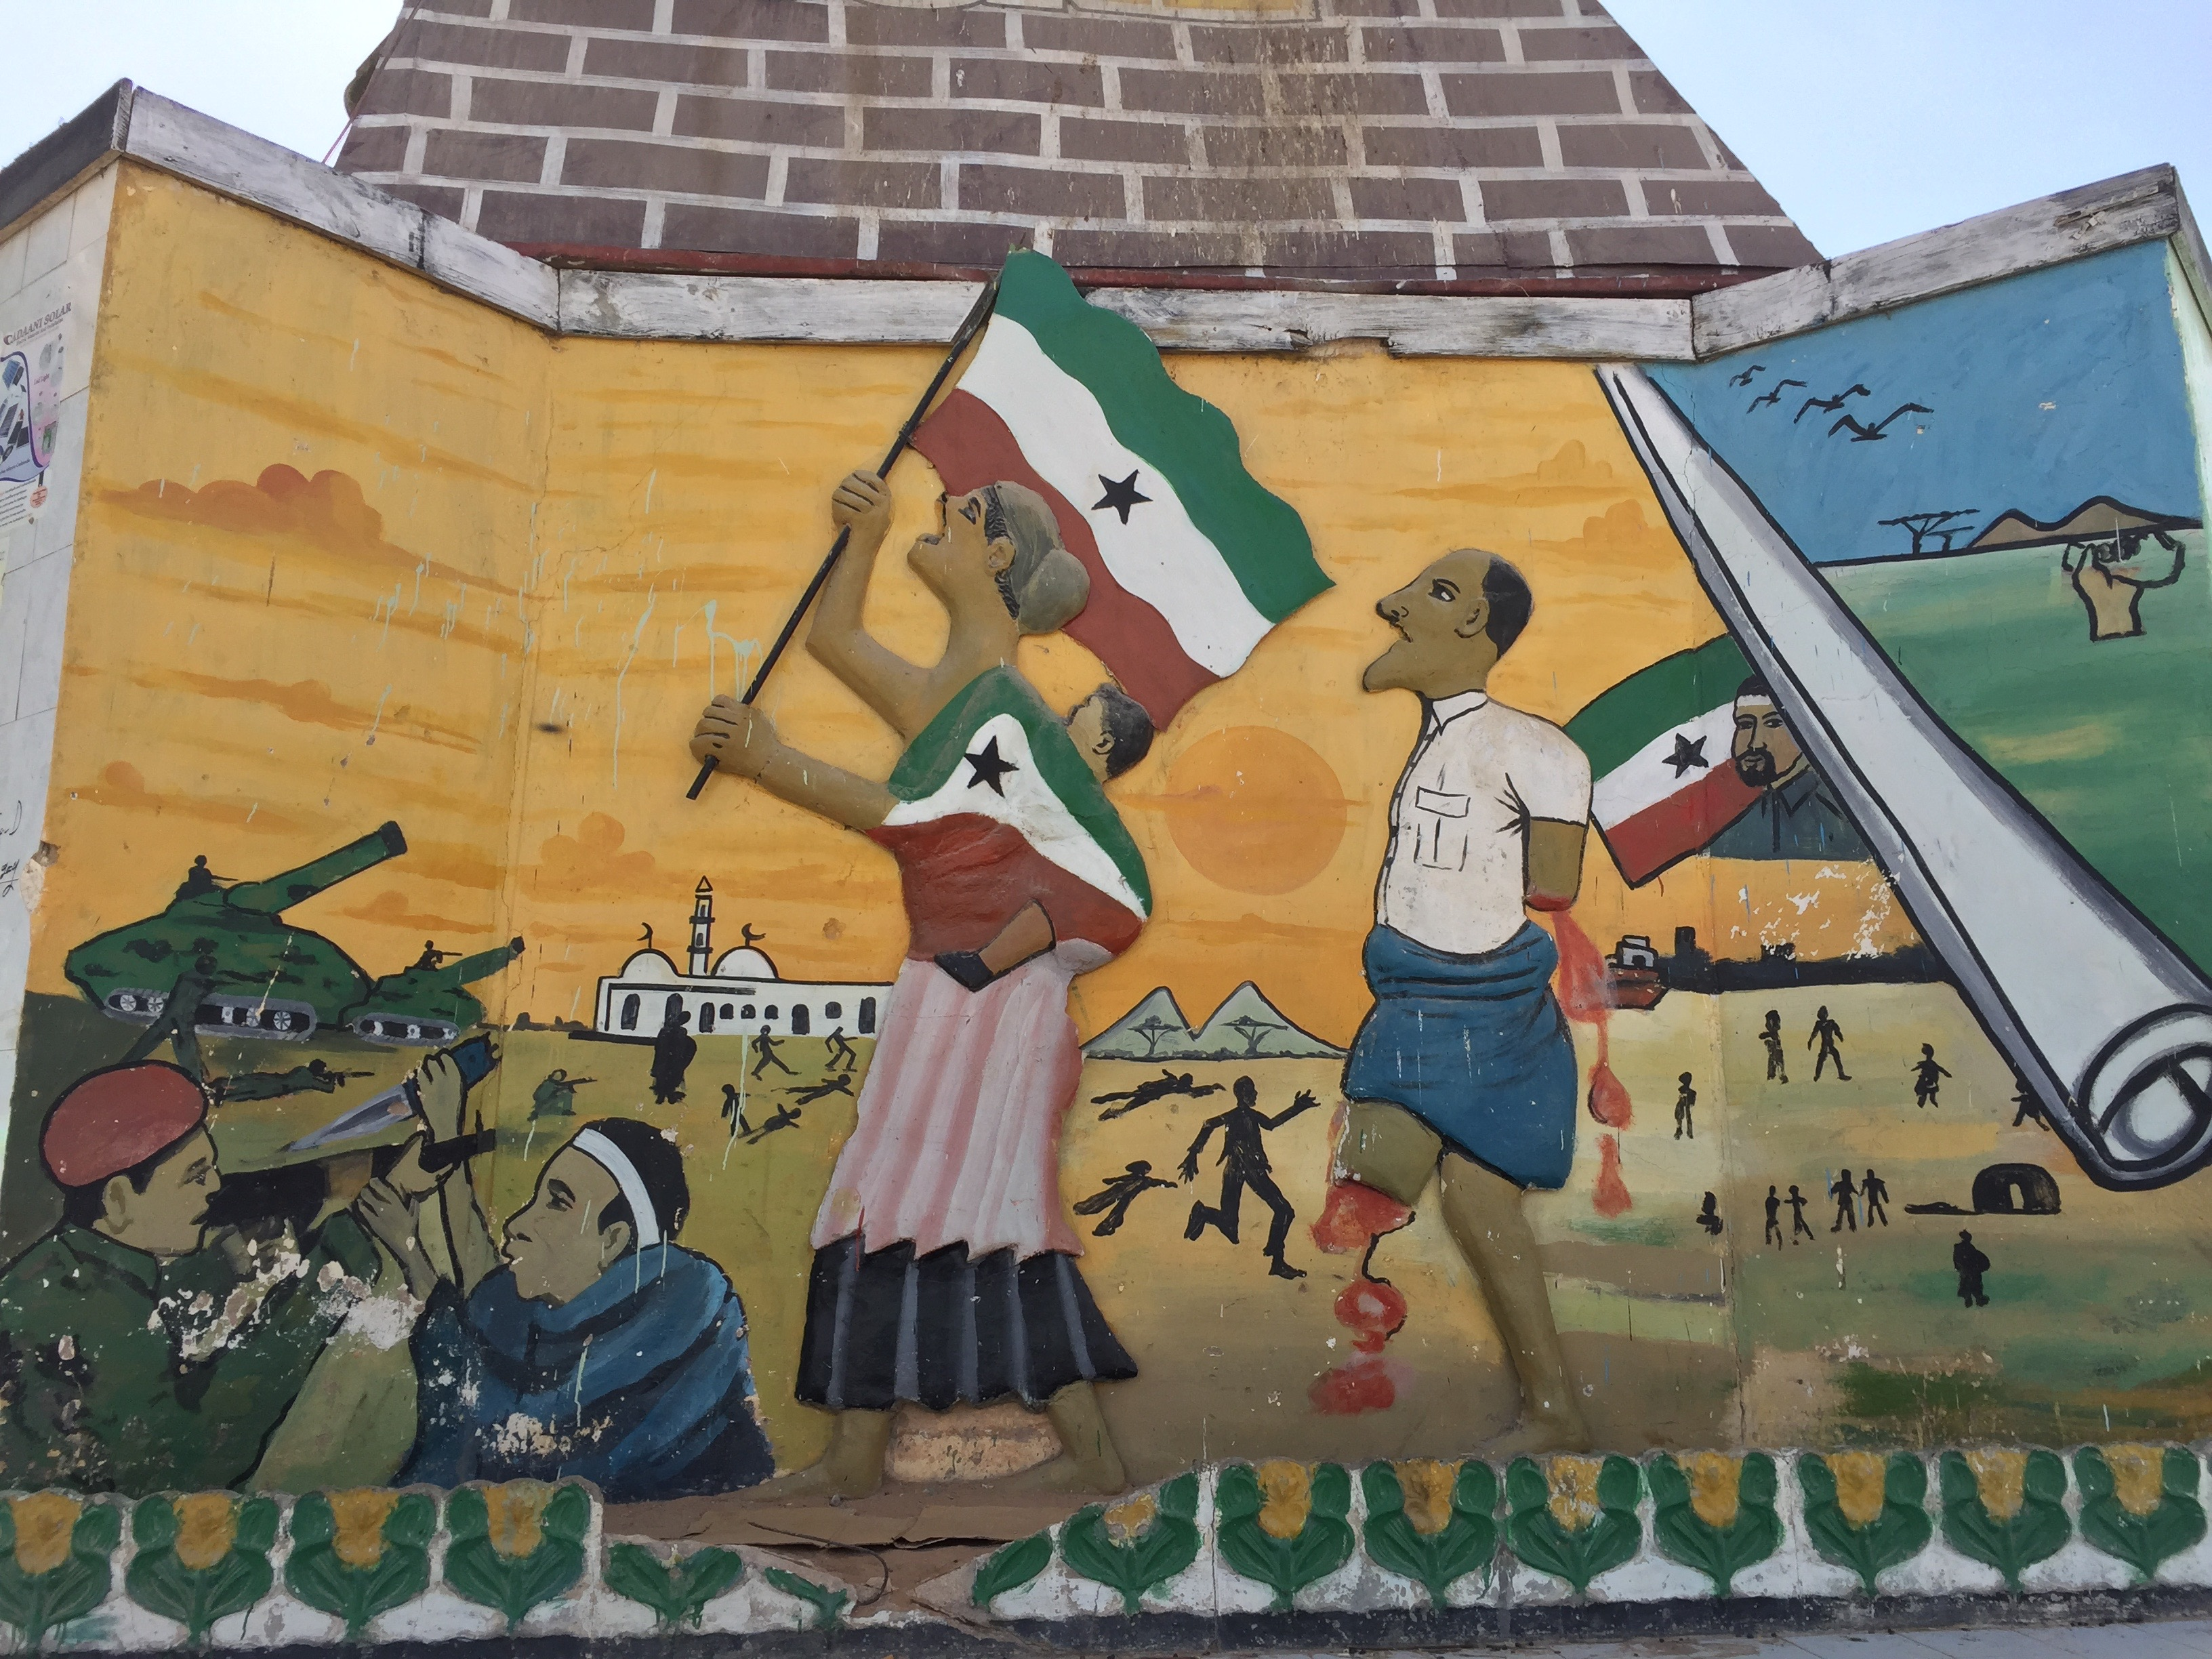 Memorial to victims of Somaliland's civil war, from 1988 to 1991,  in Hargeisa, Somaliland, March 31, 2016. (J. Craig/VOA)